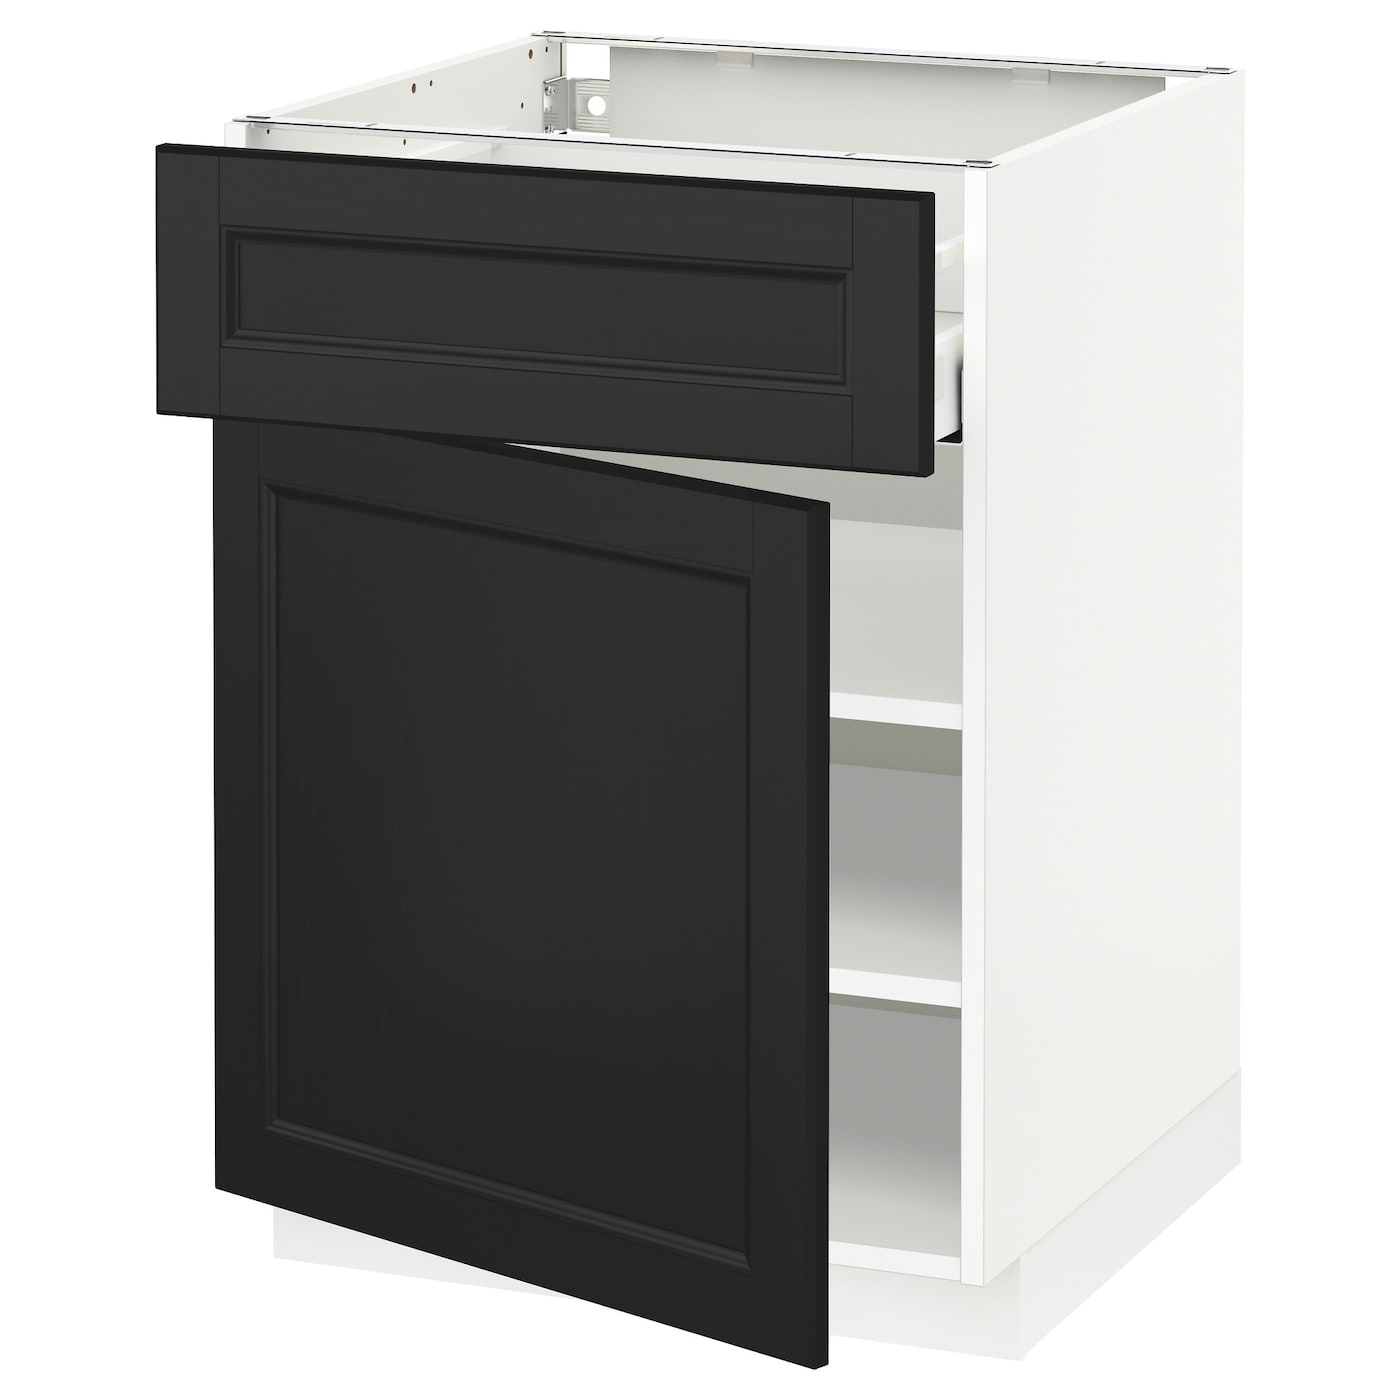 black base kitchen cabinets metod maximera base cabinet with drawer door white laxarby 12317